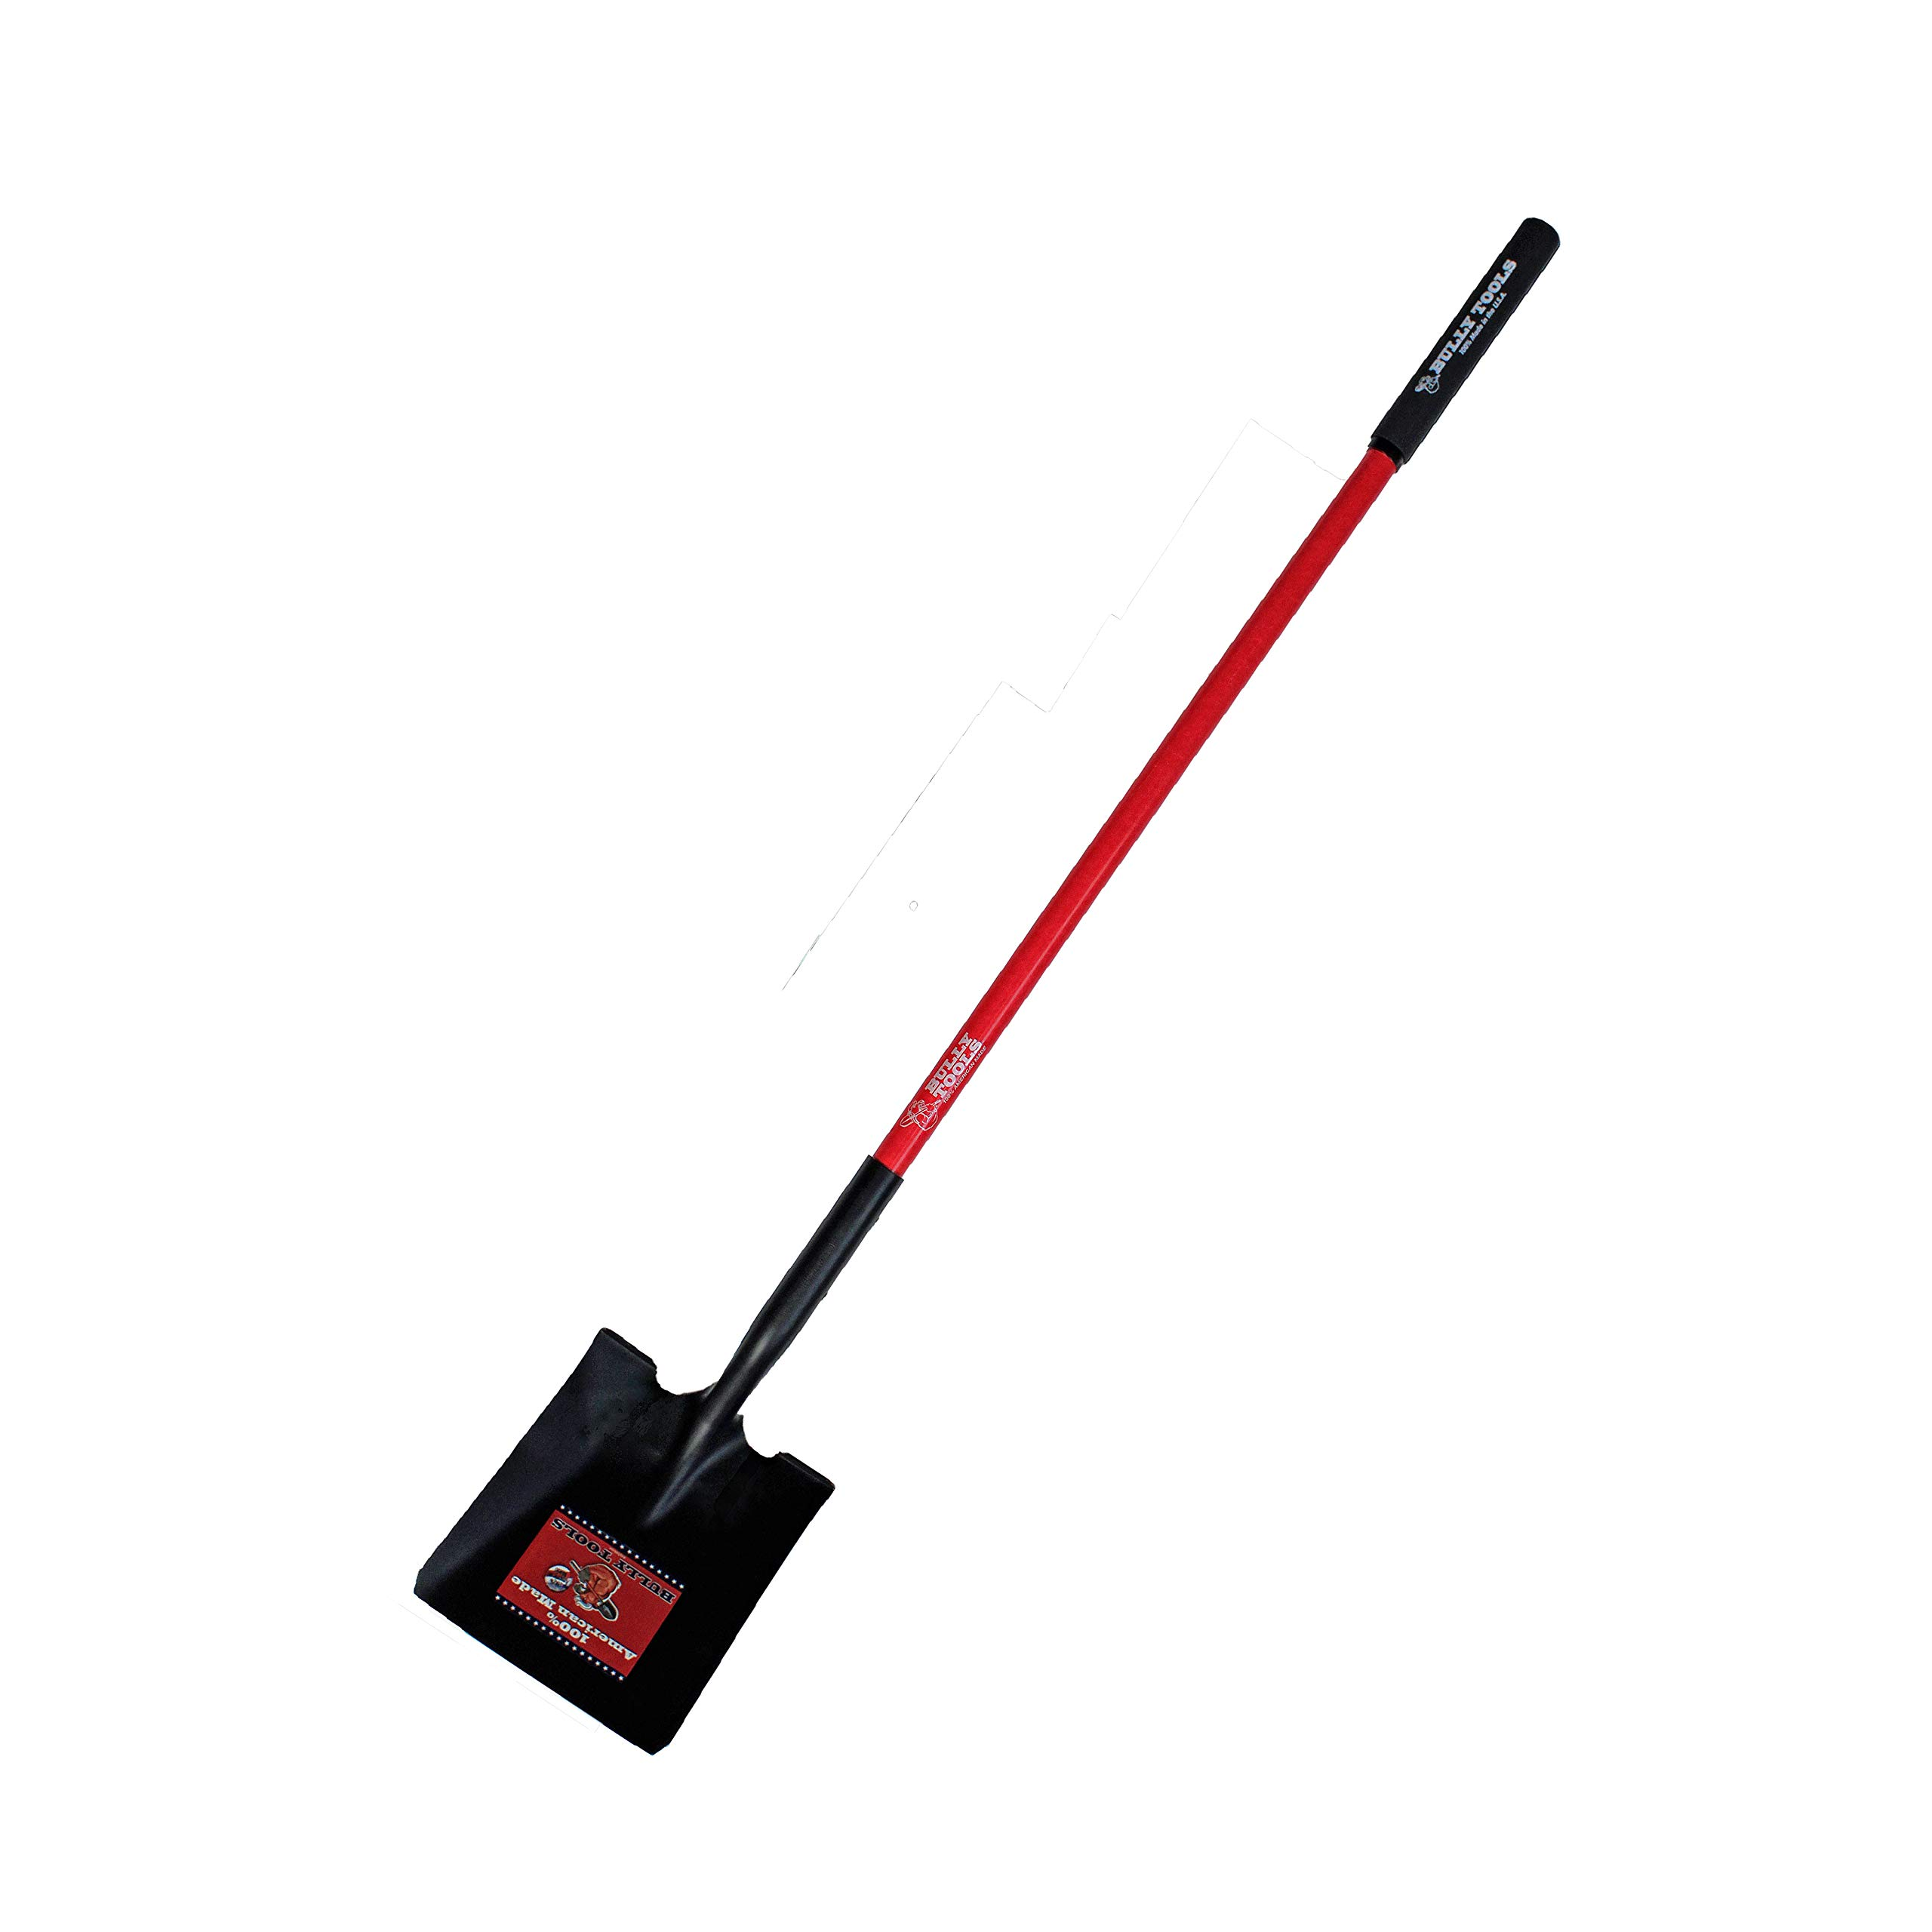 Bully Tools 82525 14 Ga. Square Point Shovel. Fiberglass Long Handle. by Bully Tools